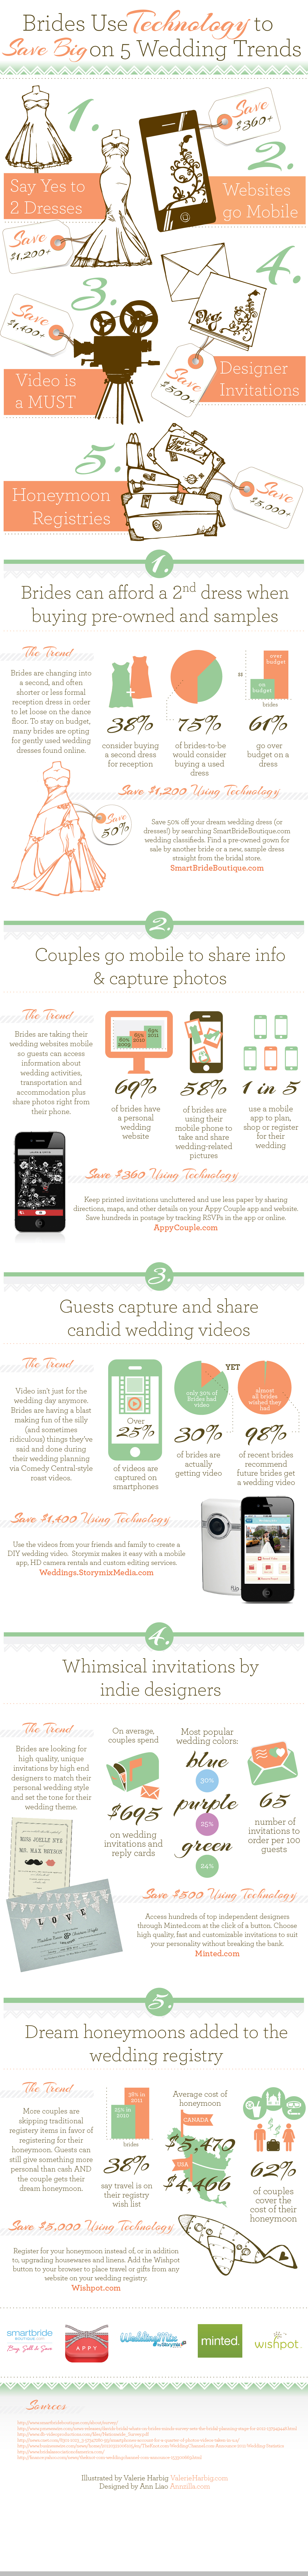 Wedding Infographic How to Save Money on Your Wedding Using Technology